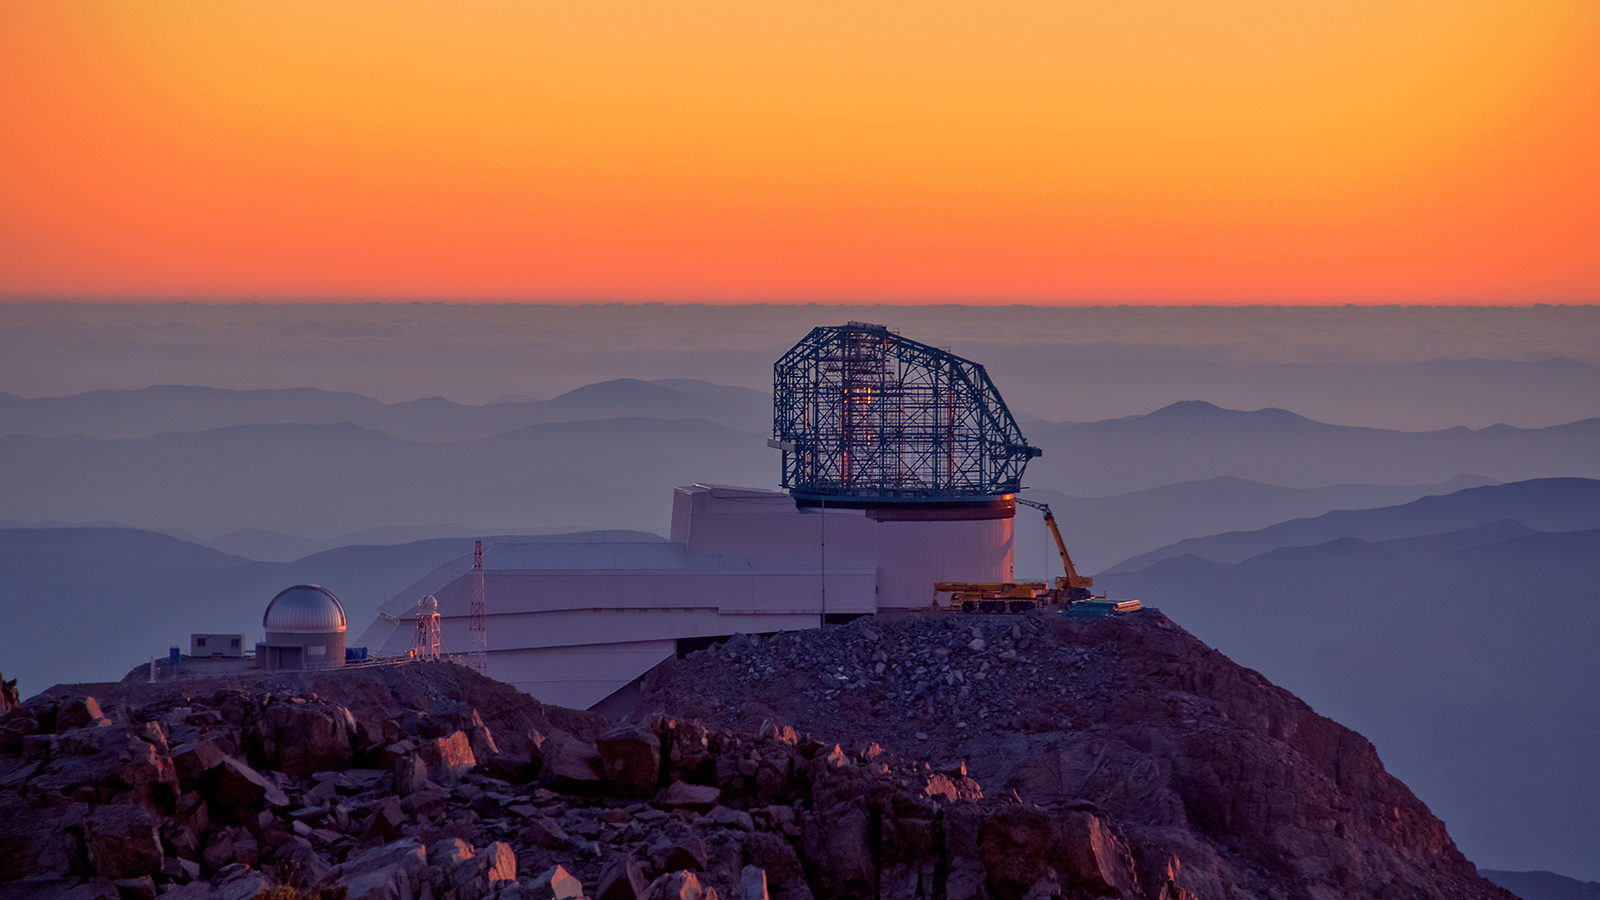 LSST at sunset